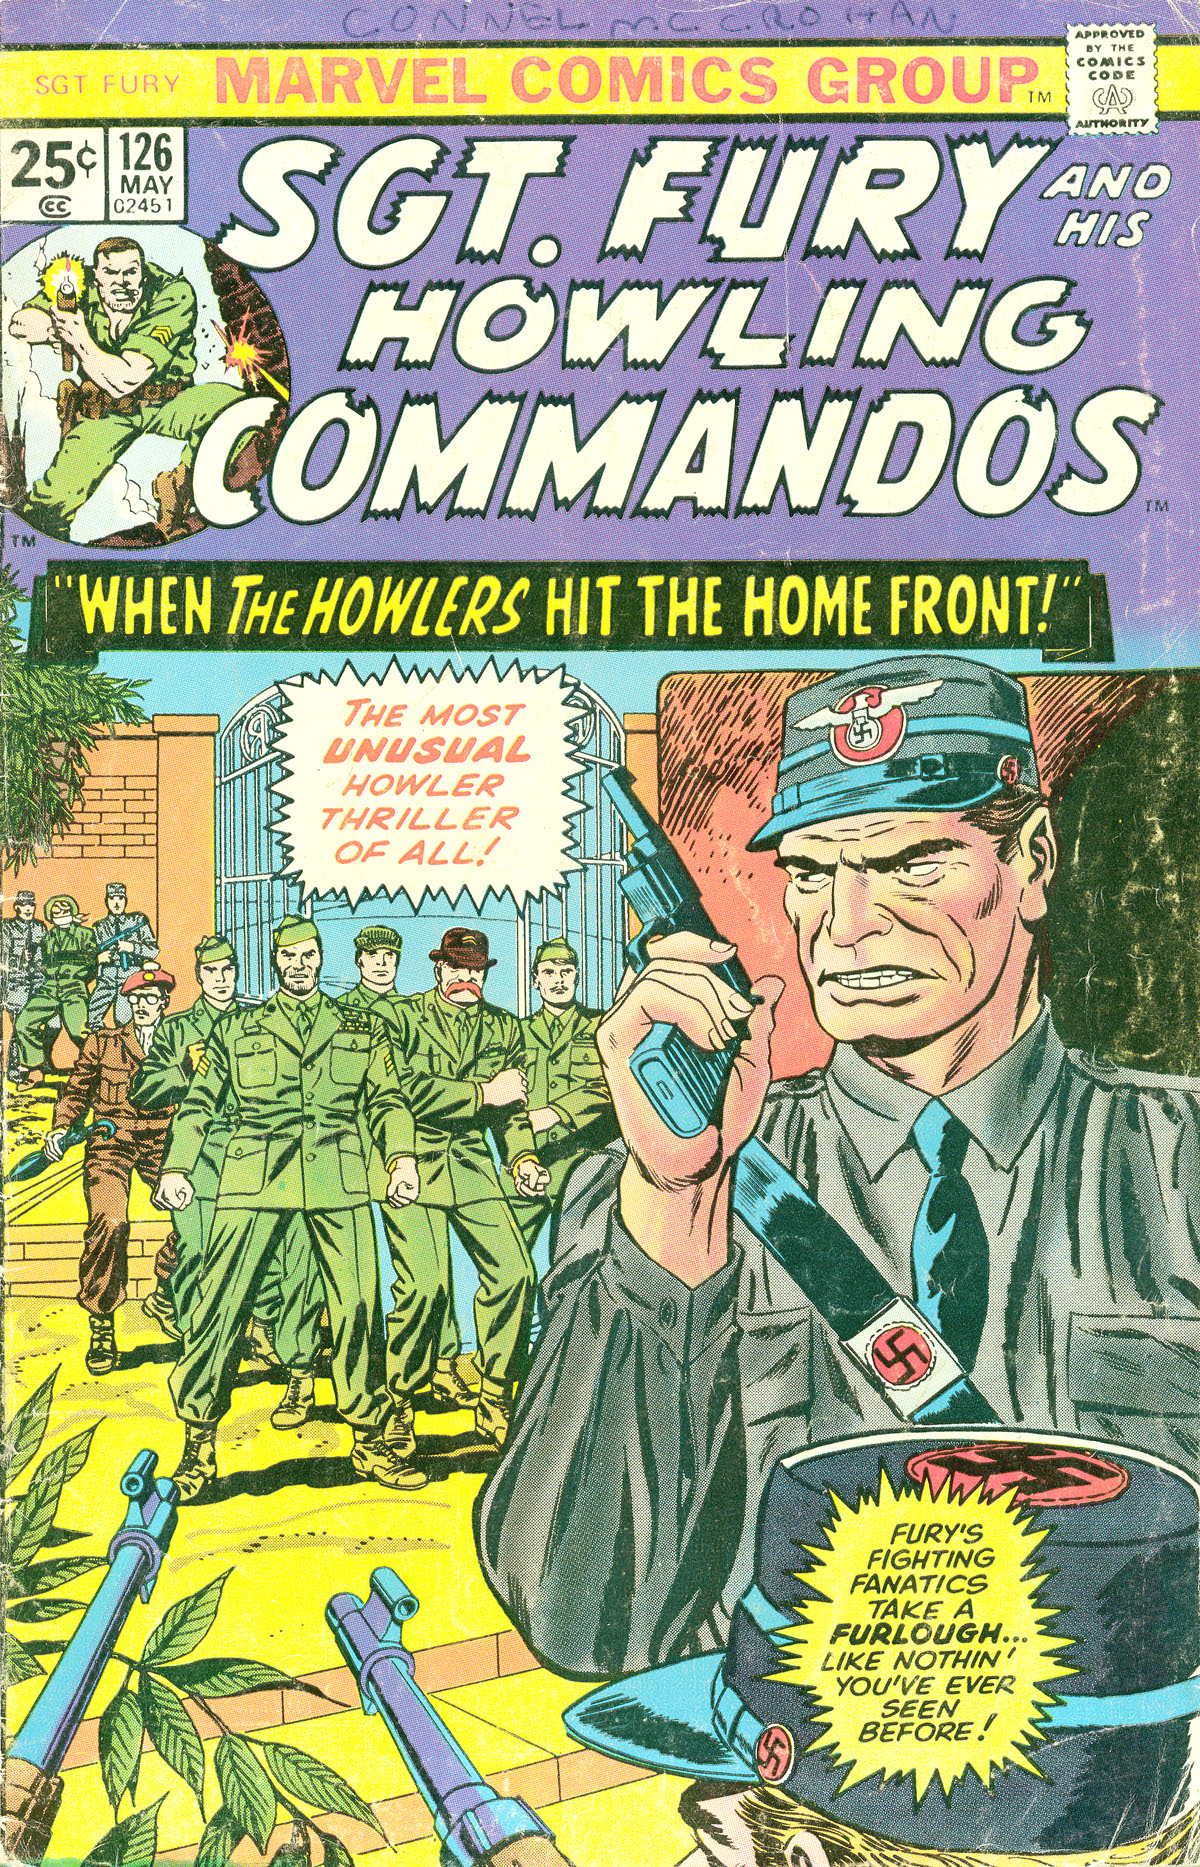 Read online Sgt. Fury comic -  Issue #126 - 1